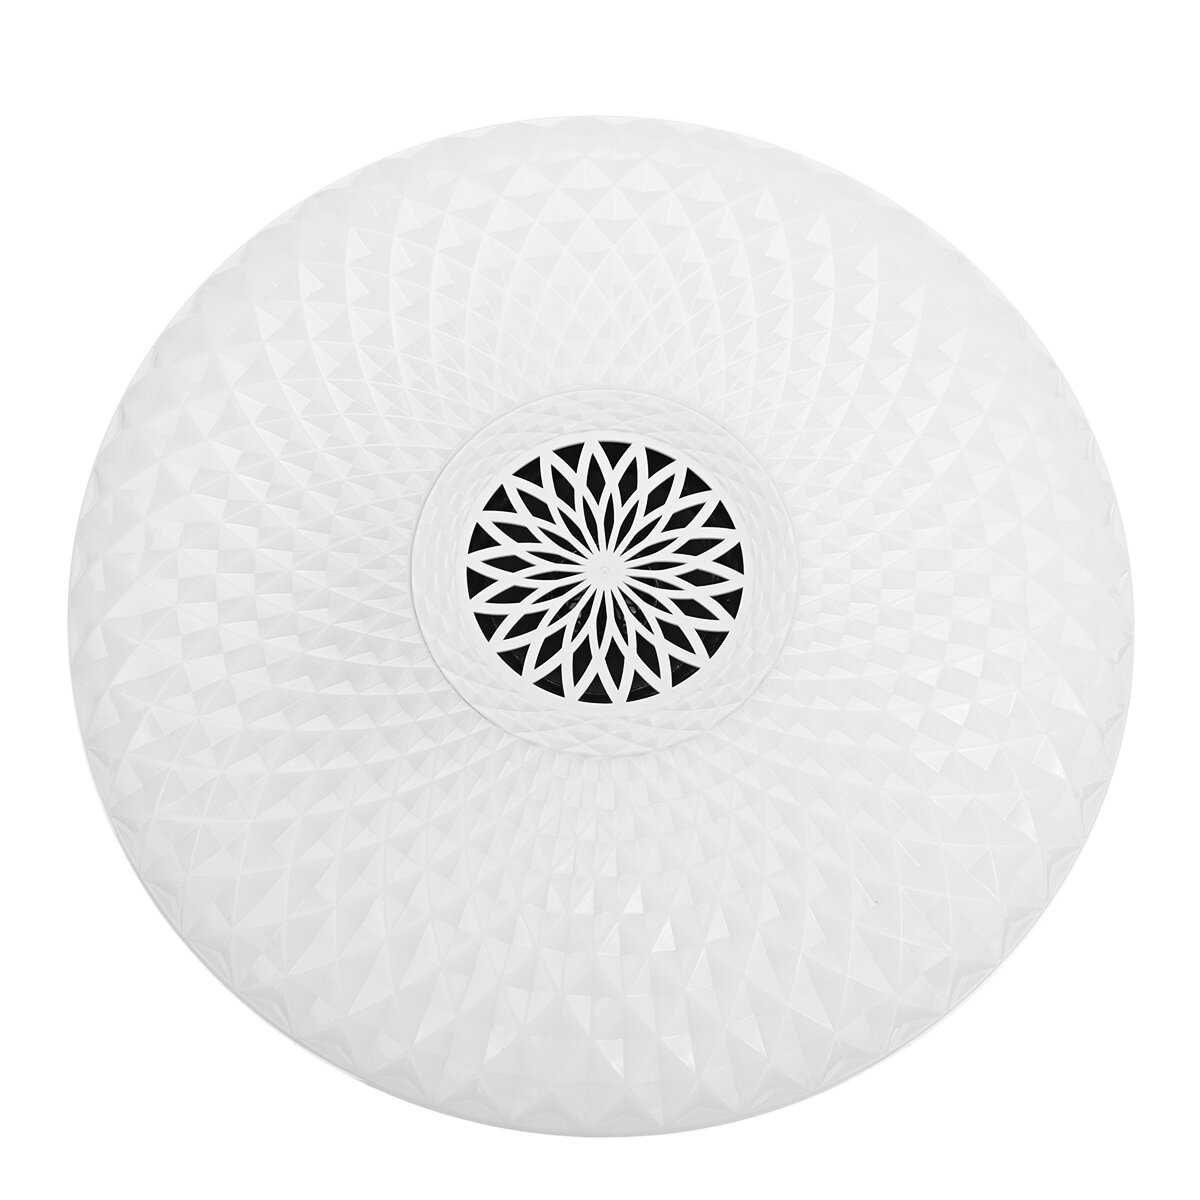 85-256V E27 24W LED Ceiling Light RGB Smart bluetooth Music Speaker UFO Bedroom Lamp Home Decoration Remote Control, Banggood  - buy with discount